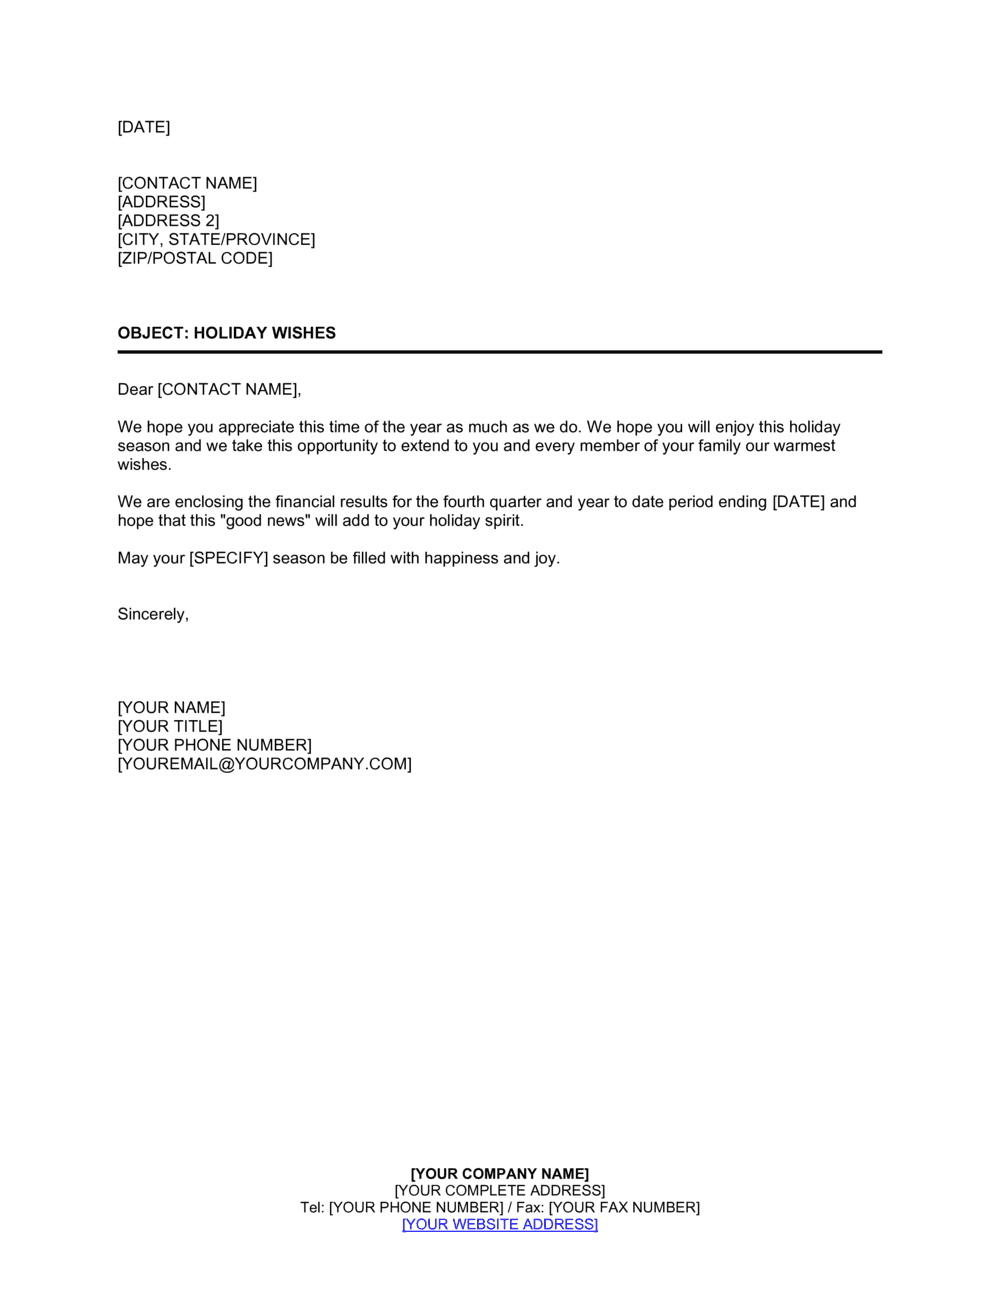 Business-in-a-Box's Letter to Stockholders Holiday Template